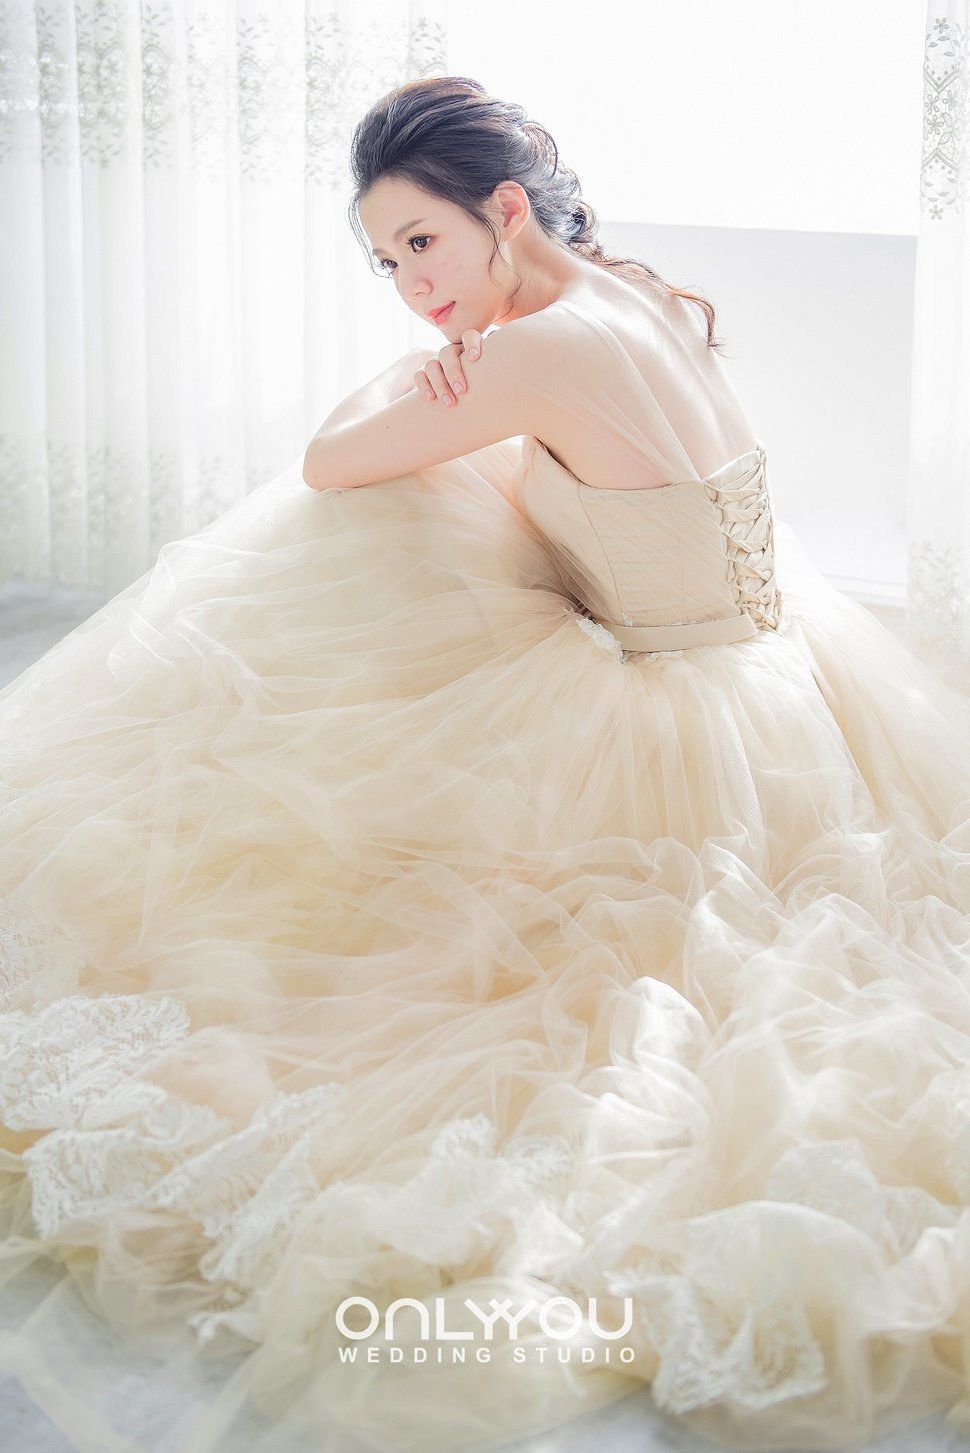 67403811_2290992554289711_982437901688111104_o - ONLY YOU 唯你婚紗攝影《結婚吧》